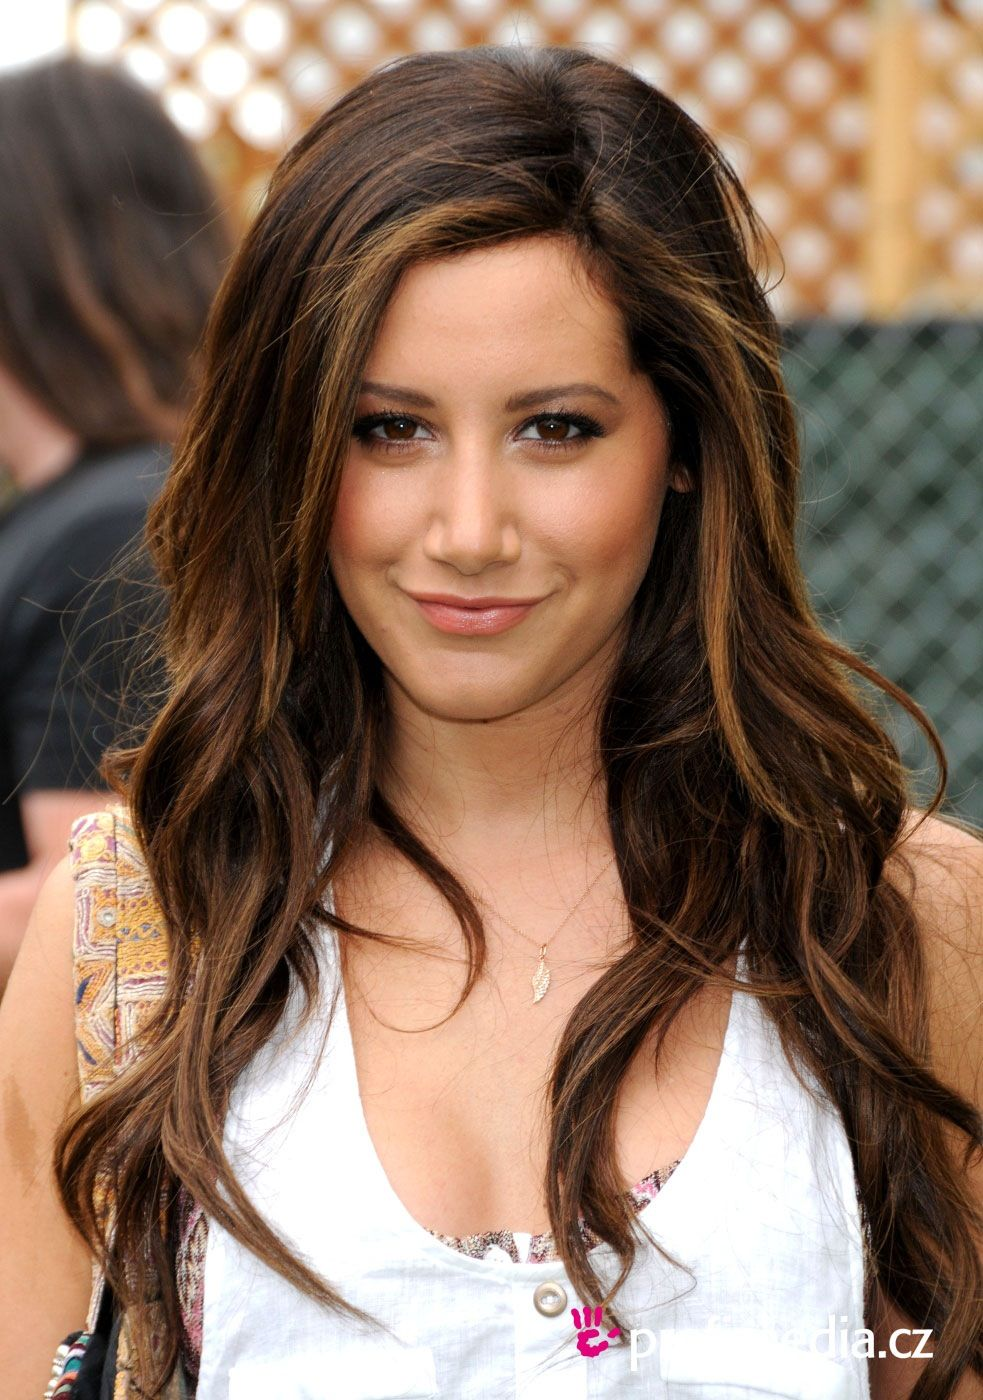 Cute Braided Hairstyles: Ashley Tisdale Hair advise